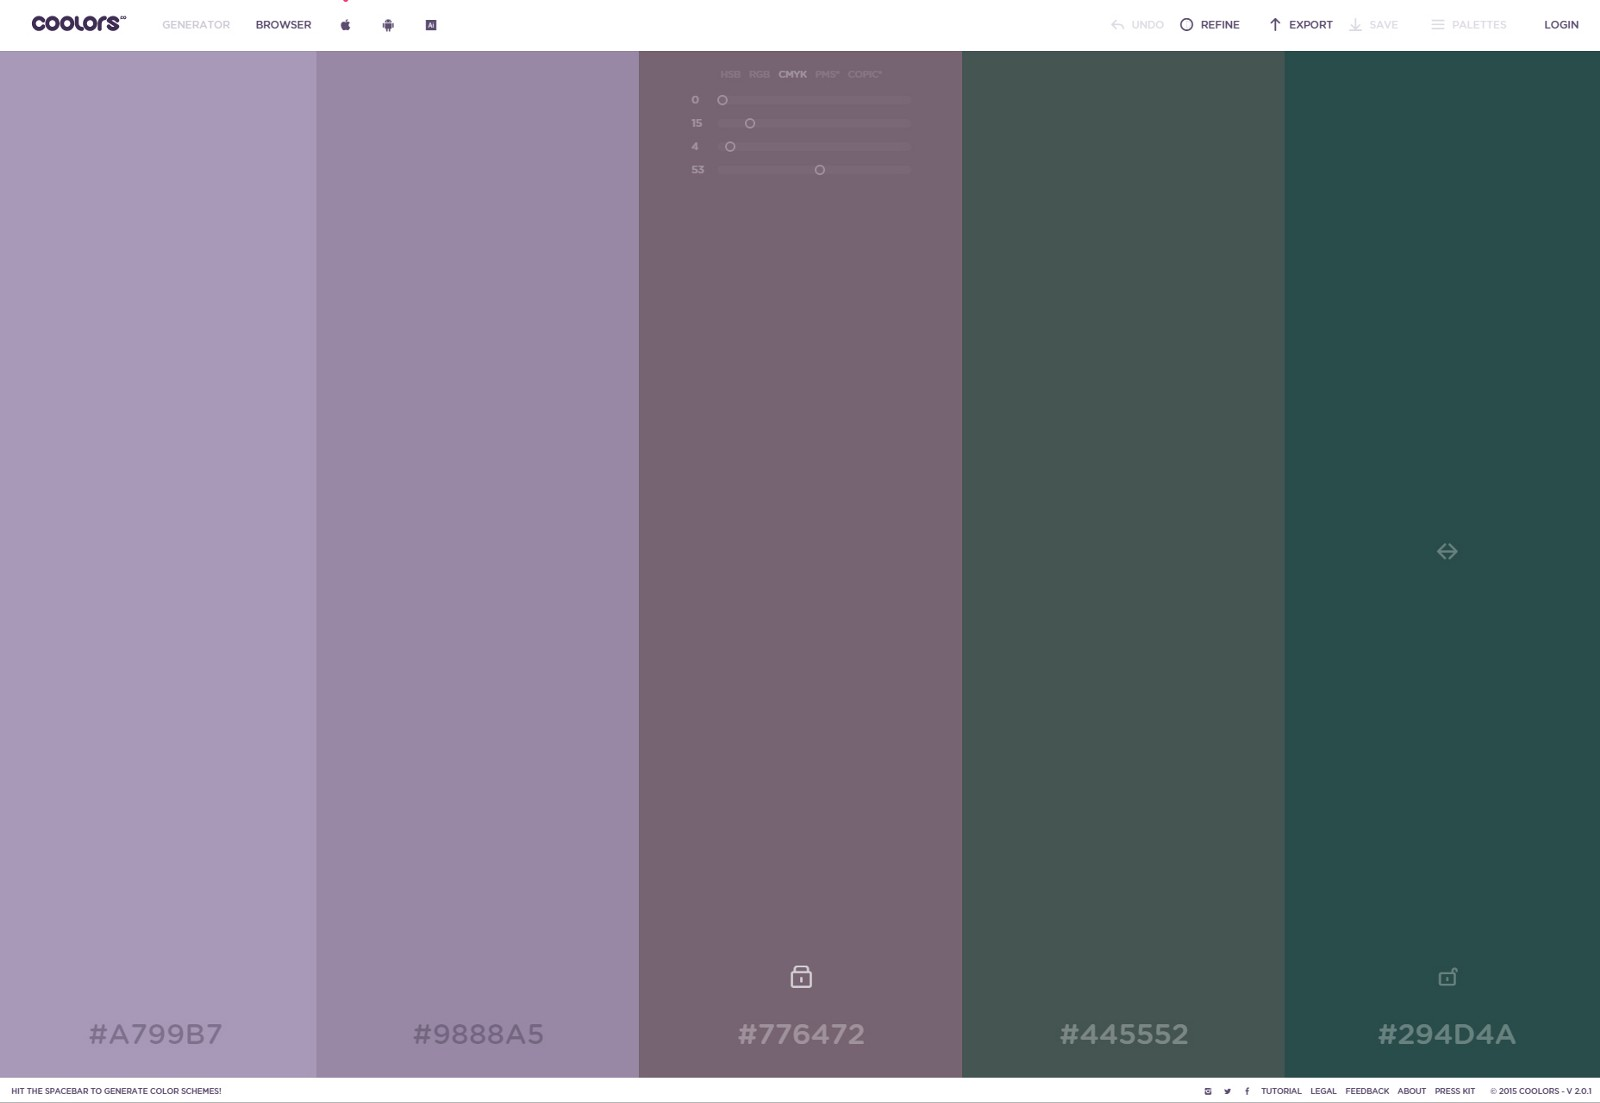 thesis color schemes Paletton is the successor of the previous color scheme designer 3 application, used by almost 20 milion visitors since 2009 (while the first version was published in 2002), both professional designers and amateurs interested in design, mobile or desktop application design or web design, interior design, fashion or home improvement and make-overs.